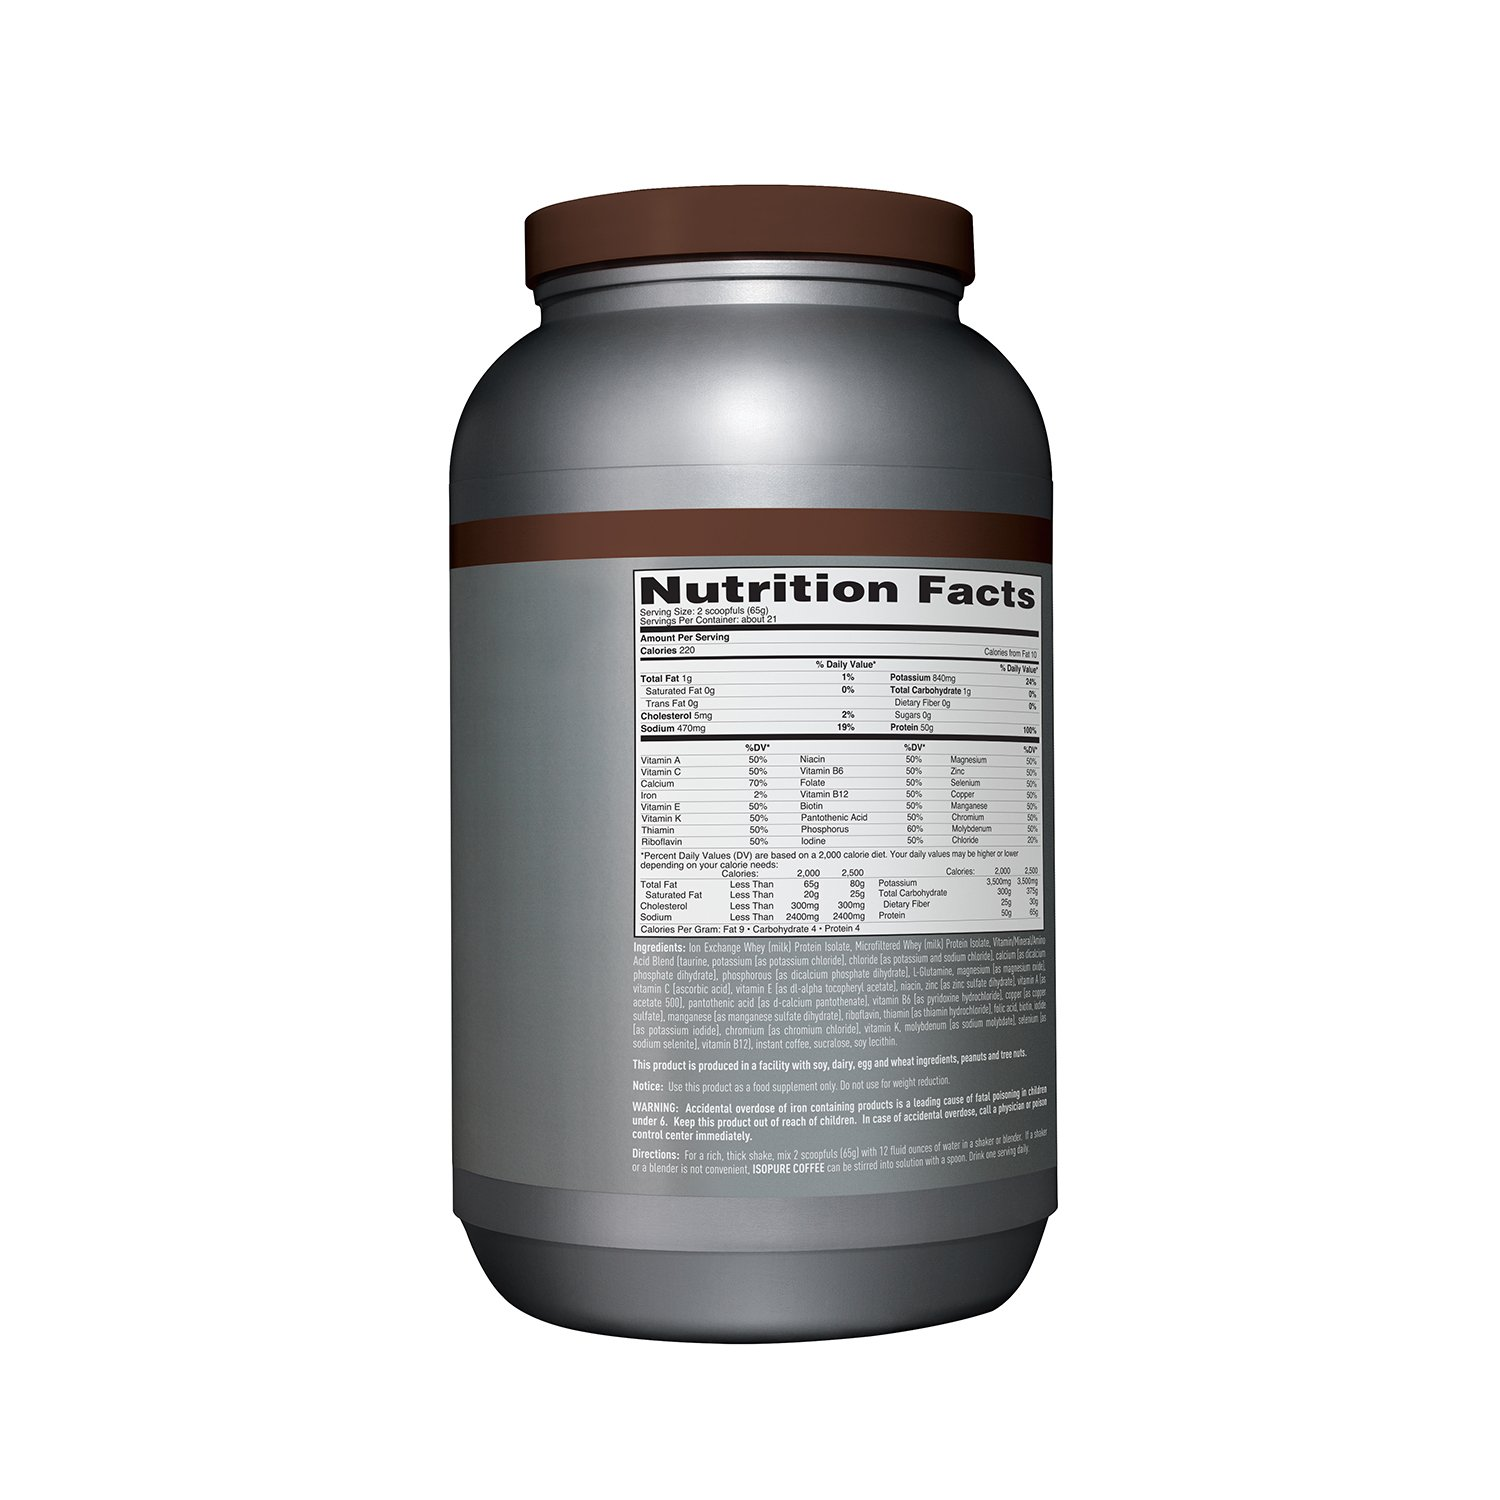 Amazon.com: Isopure With Coffee Protein Powder, 100% Whey Protein Isolate, Flavor: Espresso, 3 Pounds (Packaging May Vary)